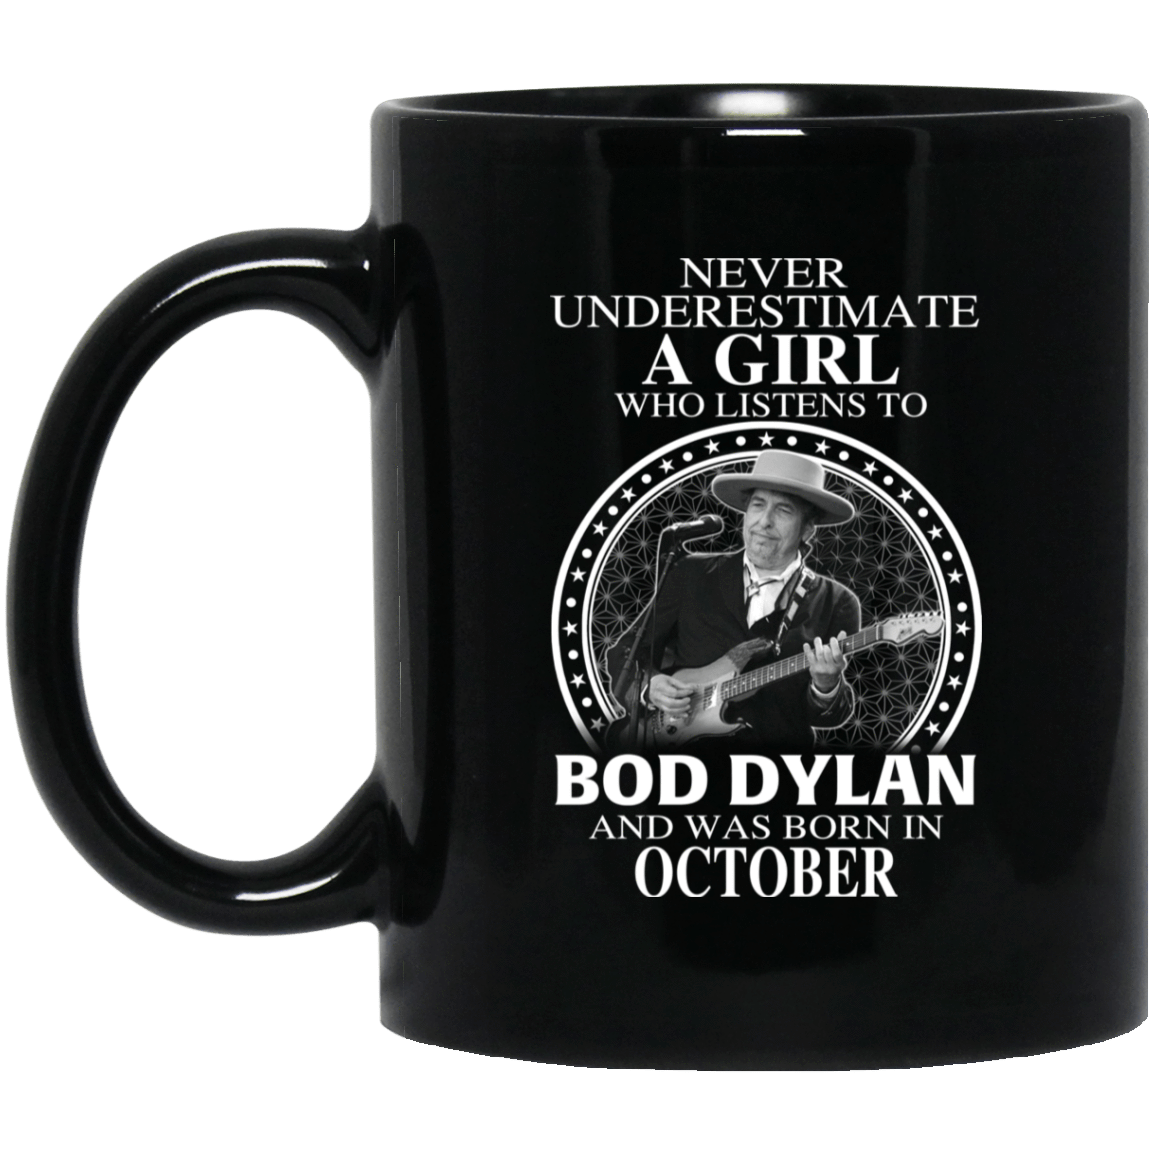 A Girl Who Listens To Bob Dylan And Was Born In October Mug 1065-10181-76153664-49307 - Tee Ript